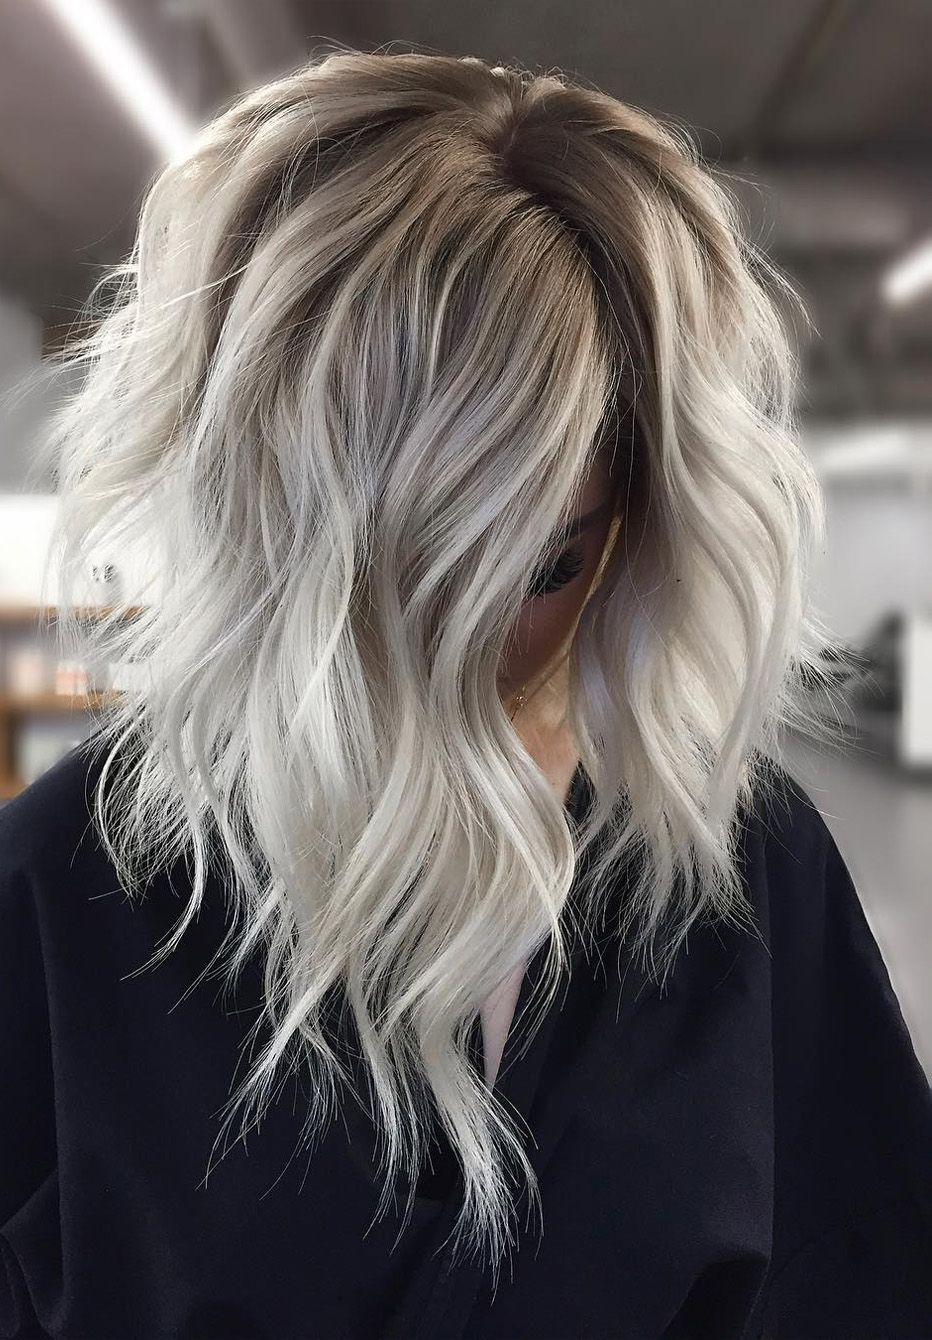 Hottest Icy Platinum Hair Colors Ideas And Trends 2019 Hottest Icy Platinum Hair Colors Ideas and Trends 2019 Ombre Hair platinum ombre hair